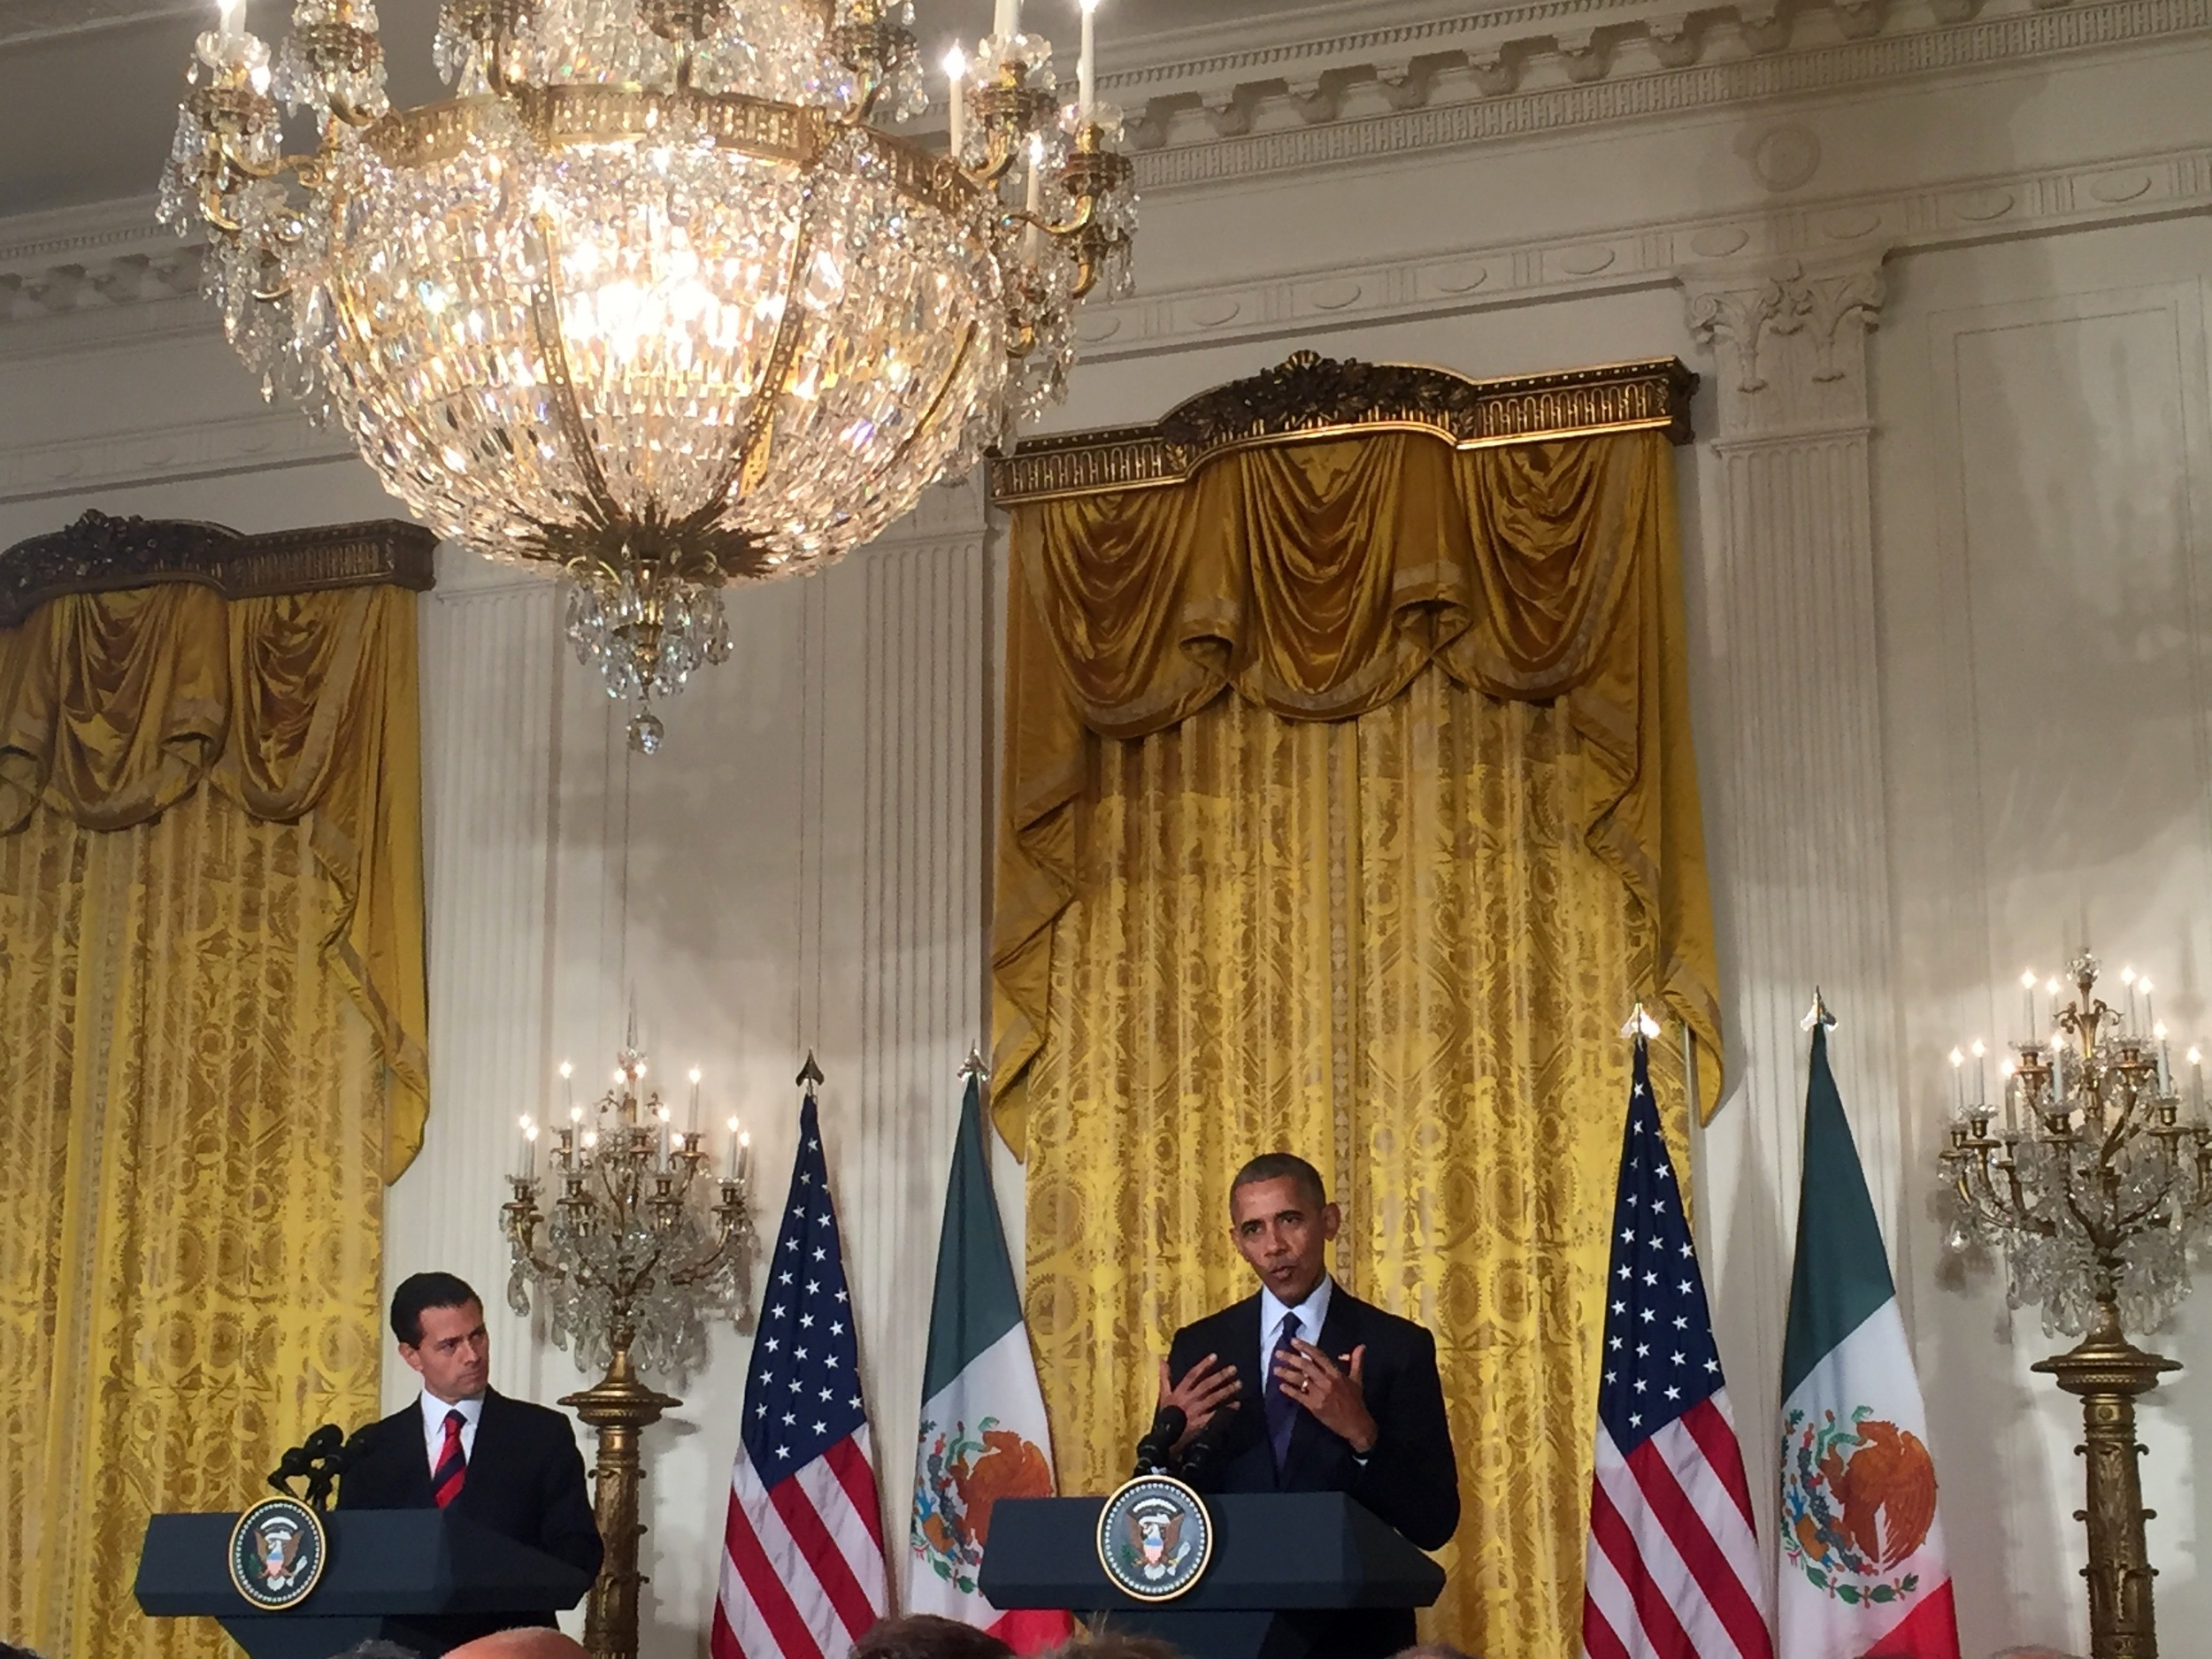 President Obama speaks at the joint US Mexico presidential press conference